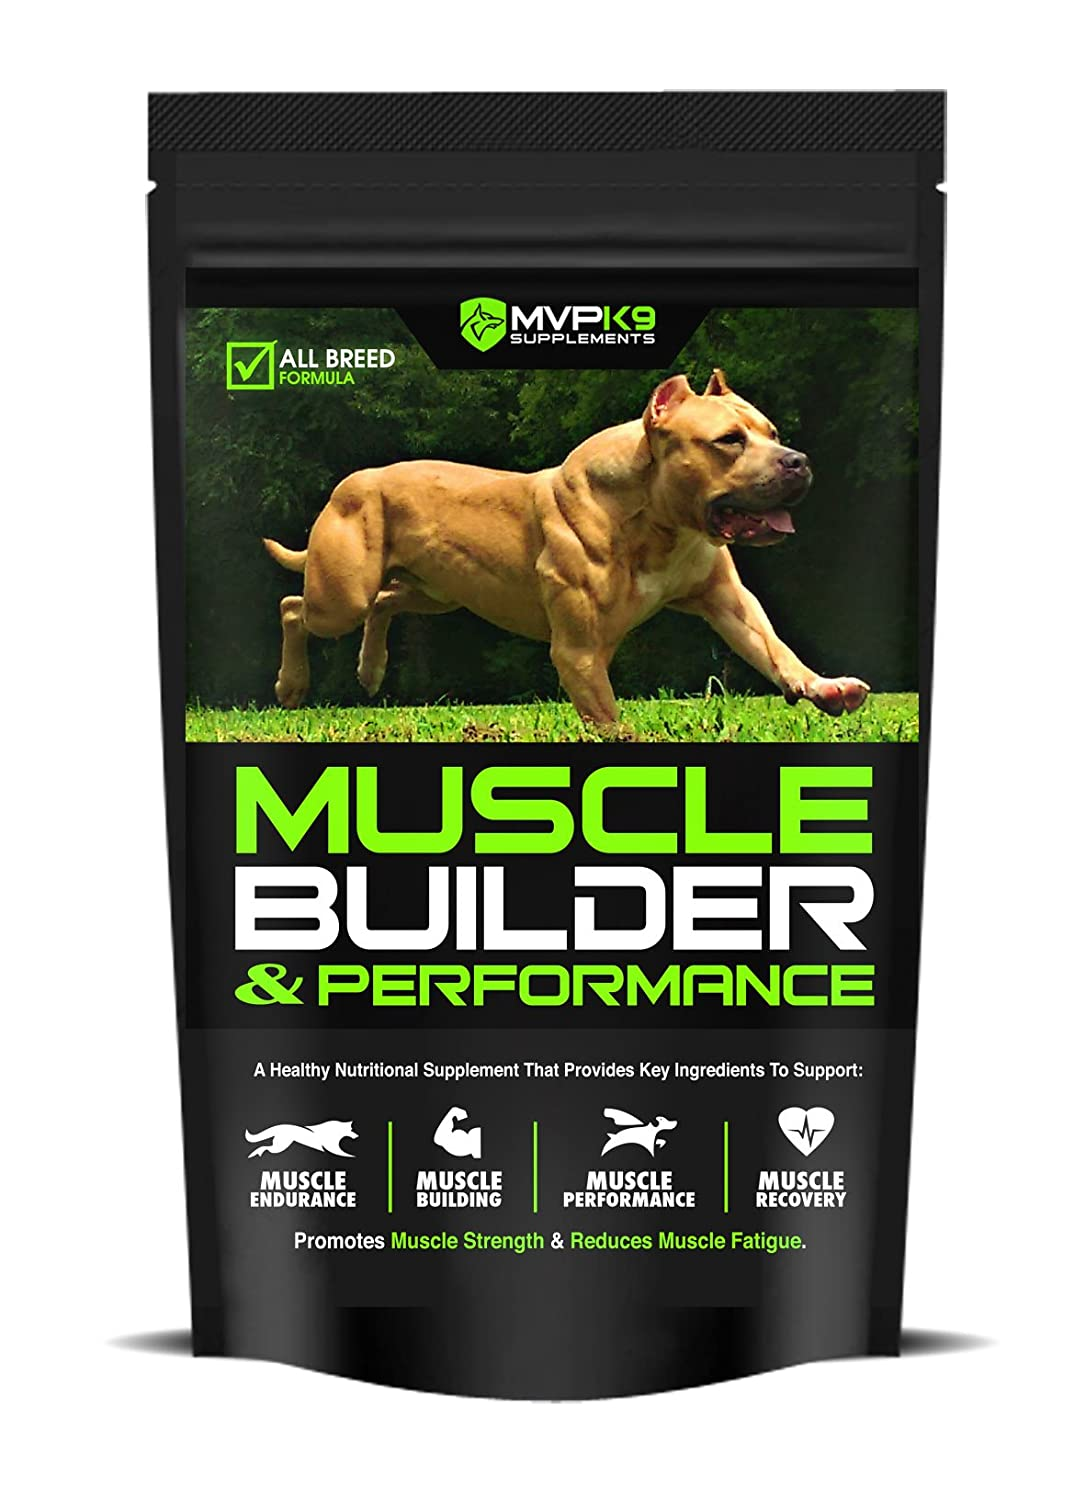 MVP K9 Supplements Muscle Builder